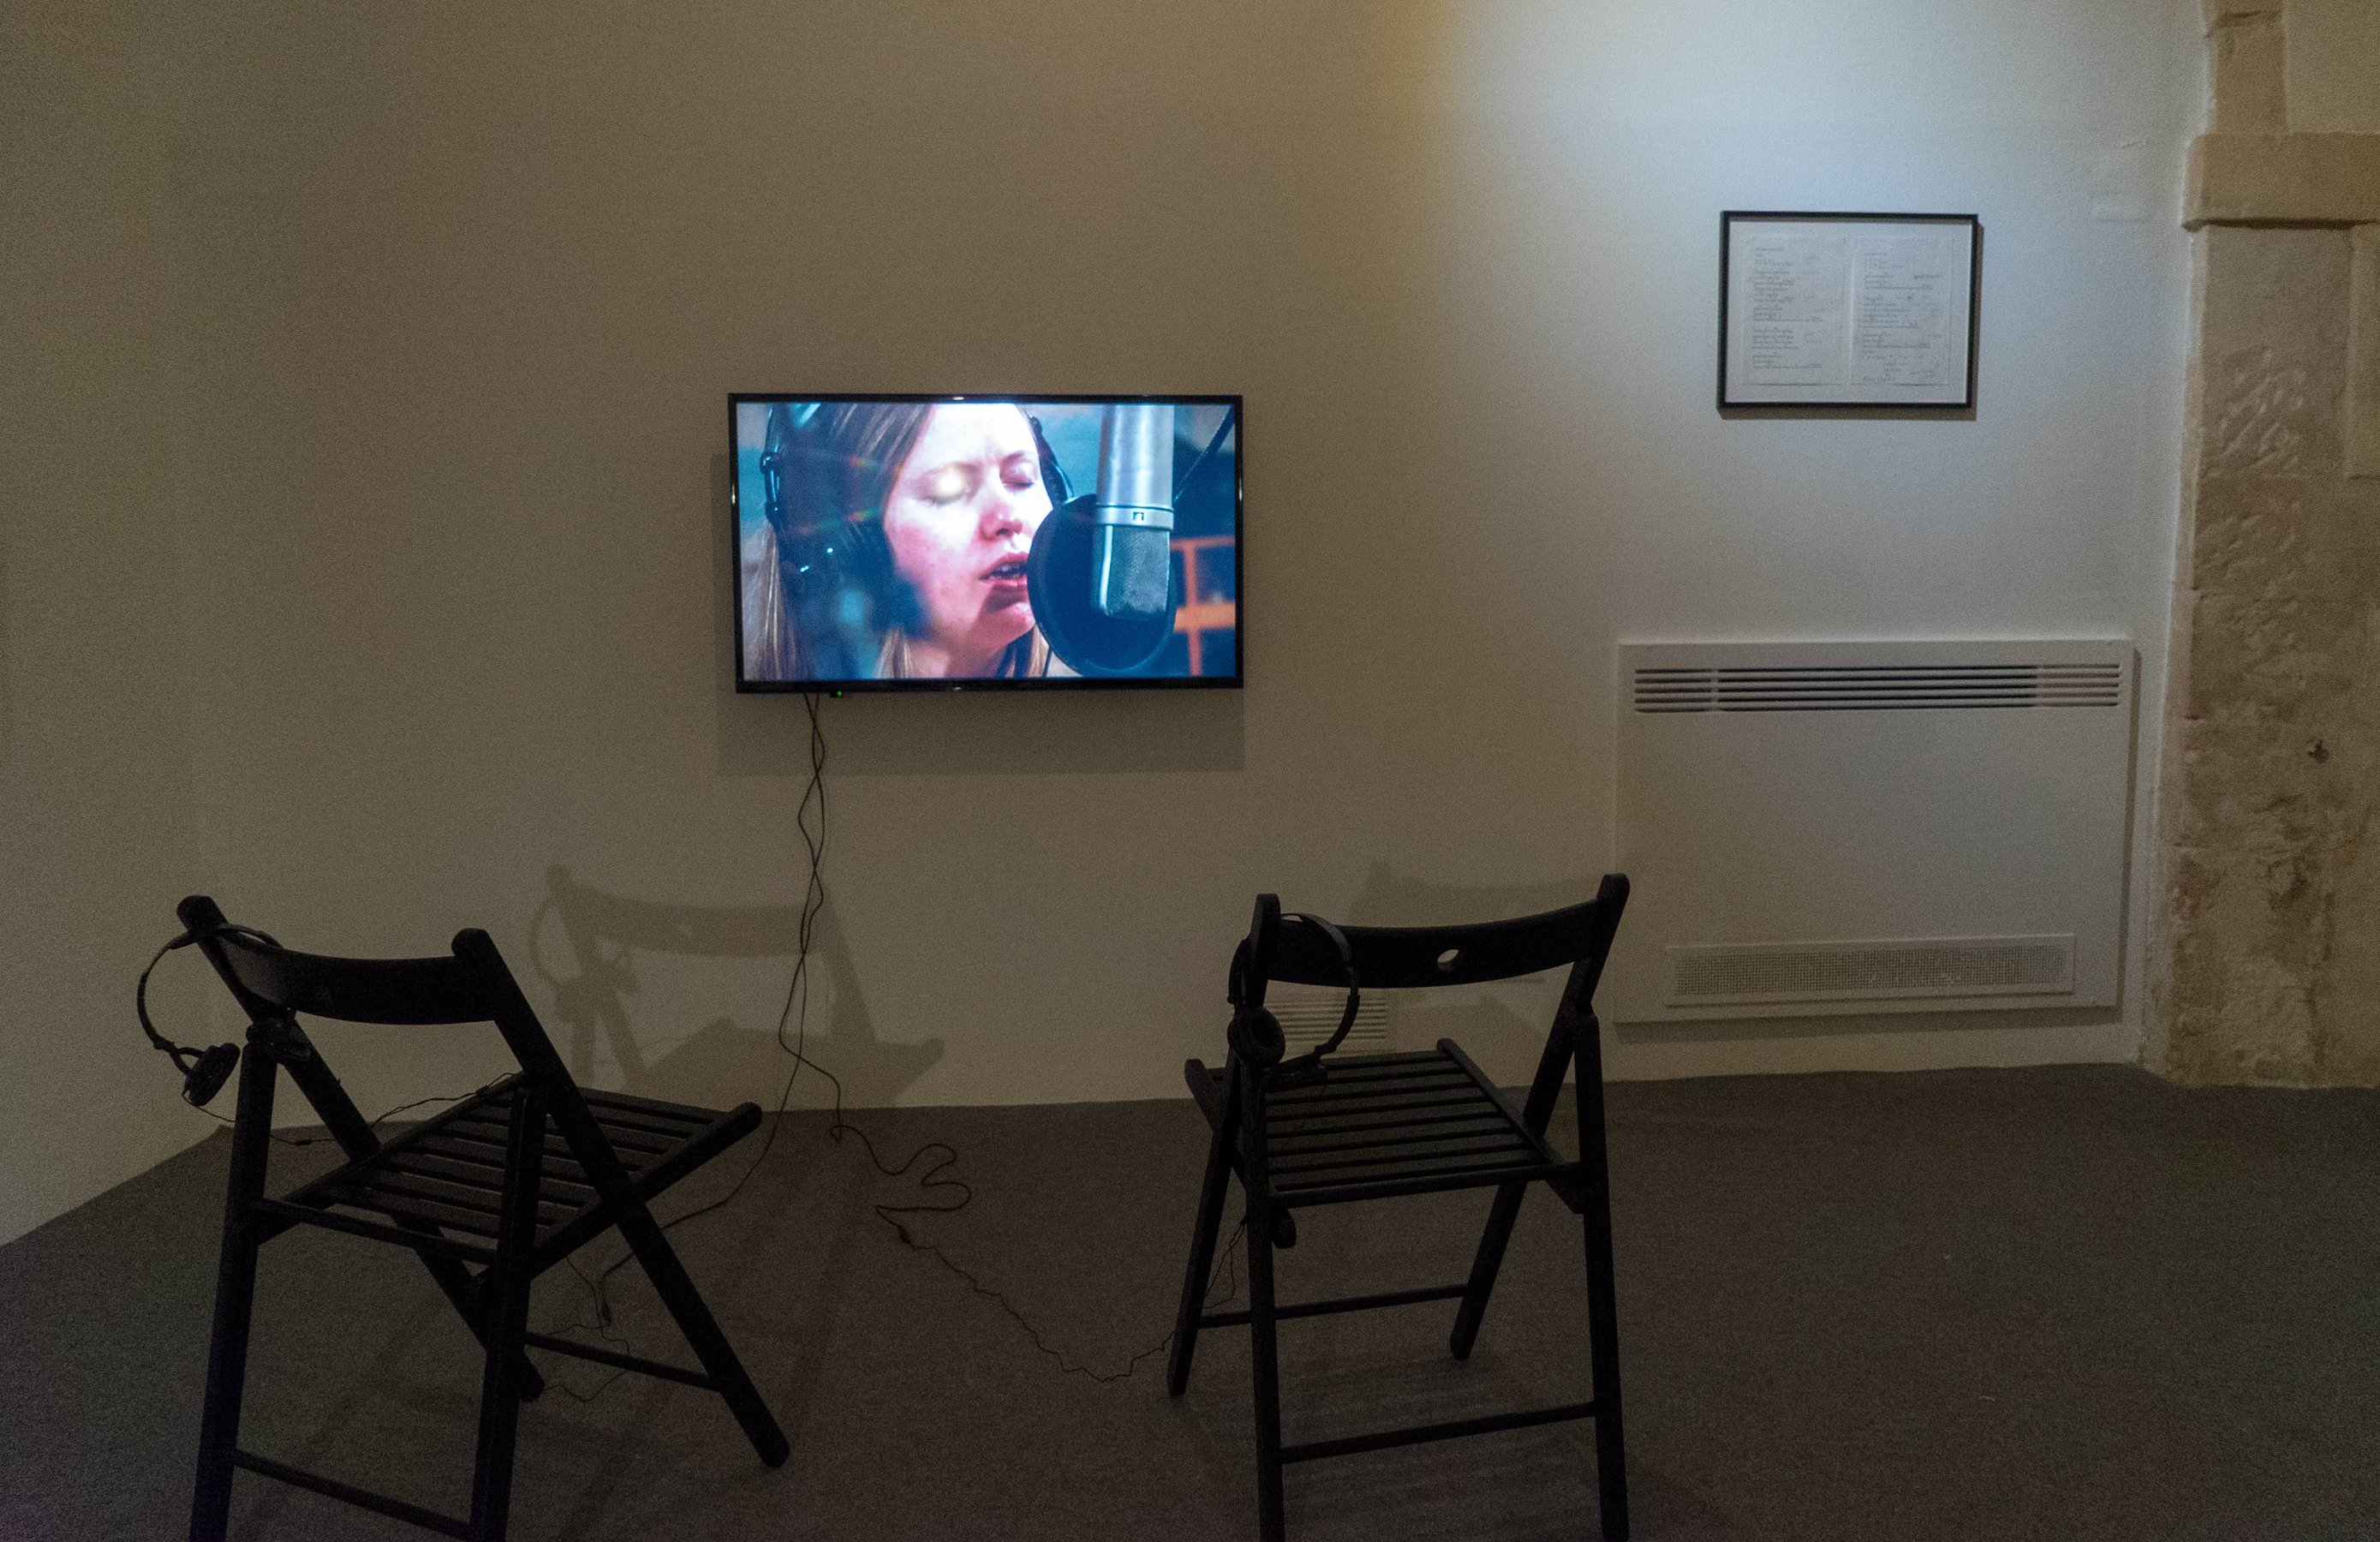 15 Years of You Don't Love me Yet 2002-2017, installation view at Laveronica arte contemporanea